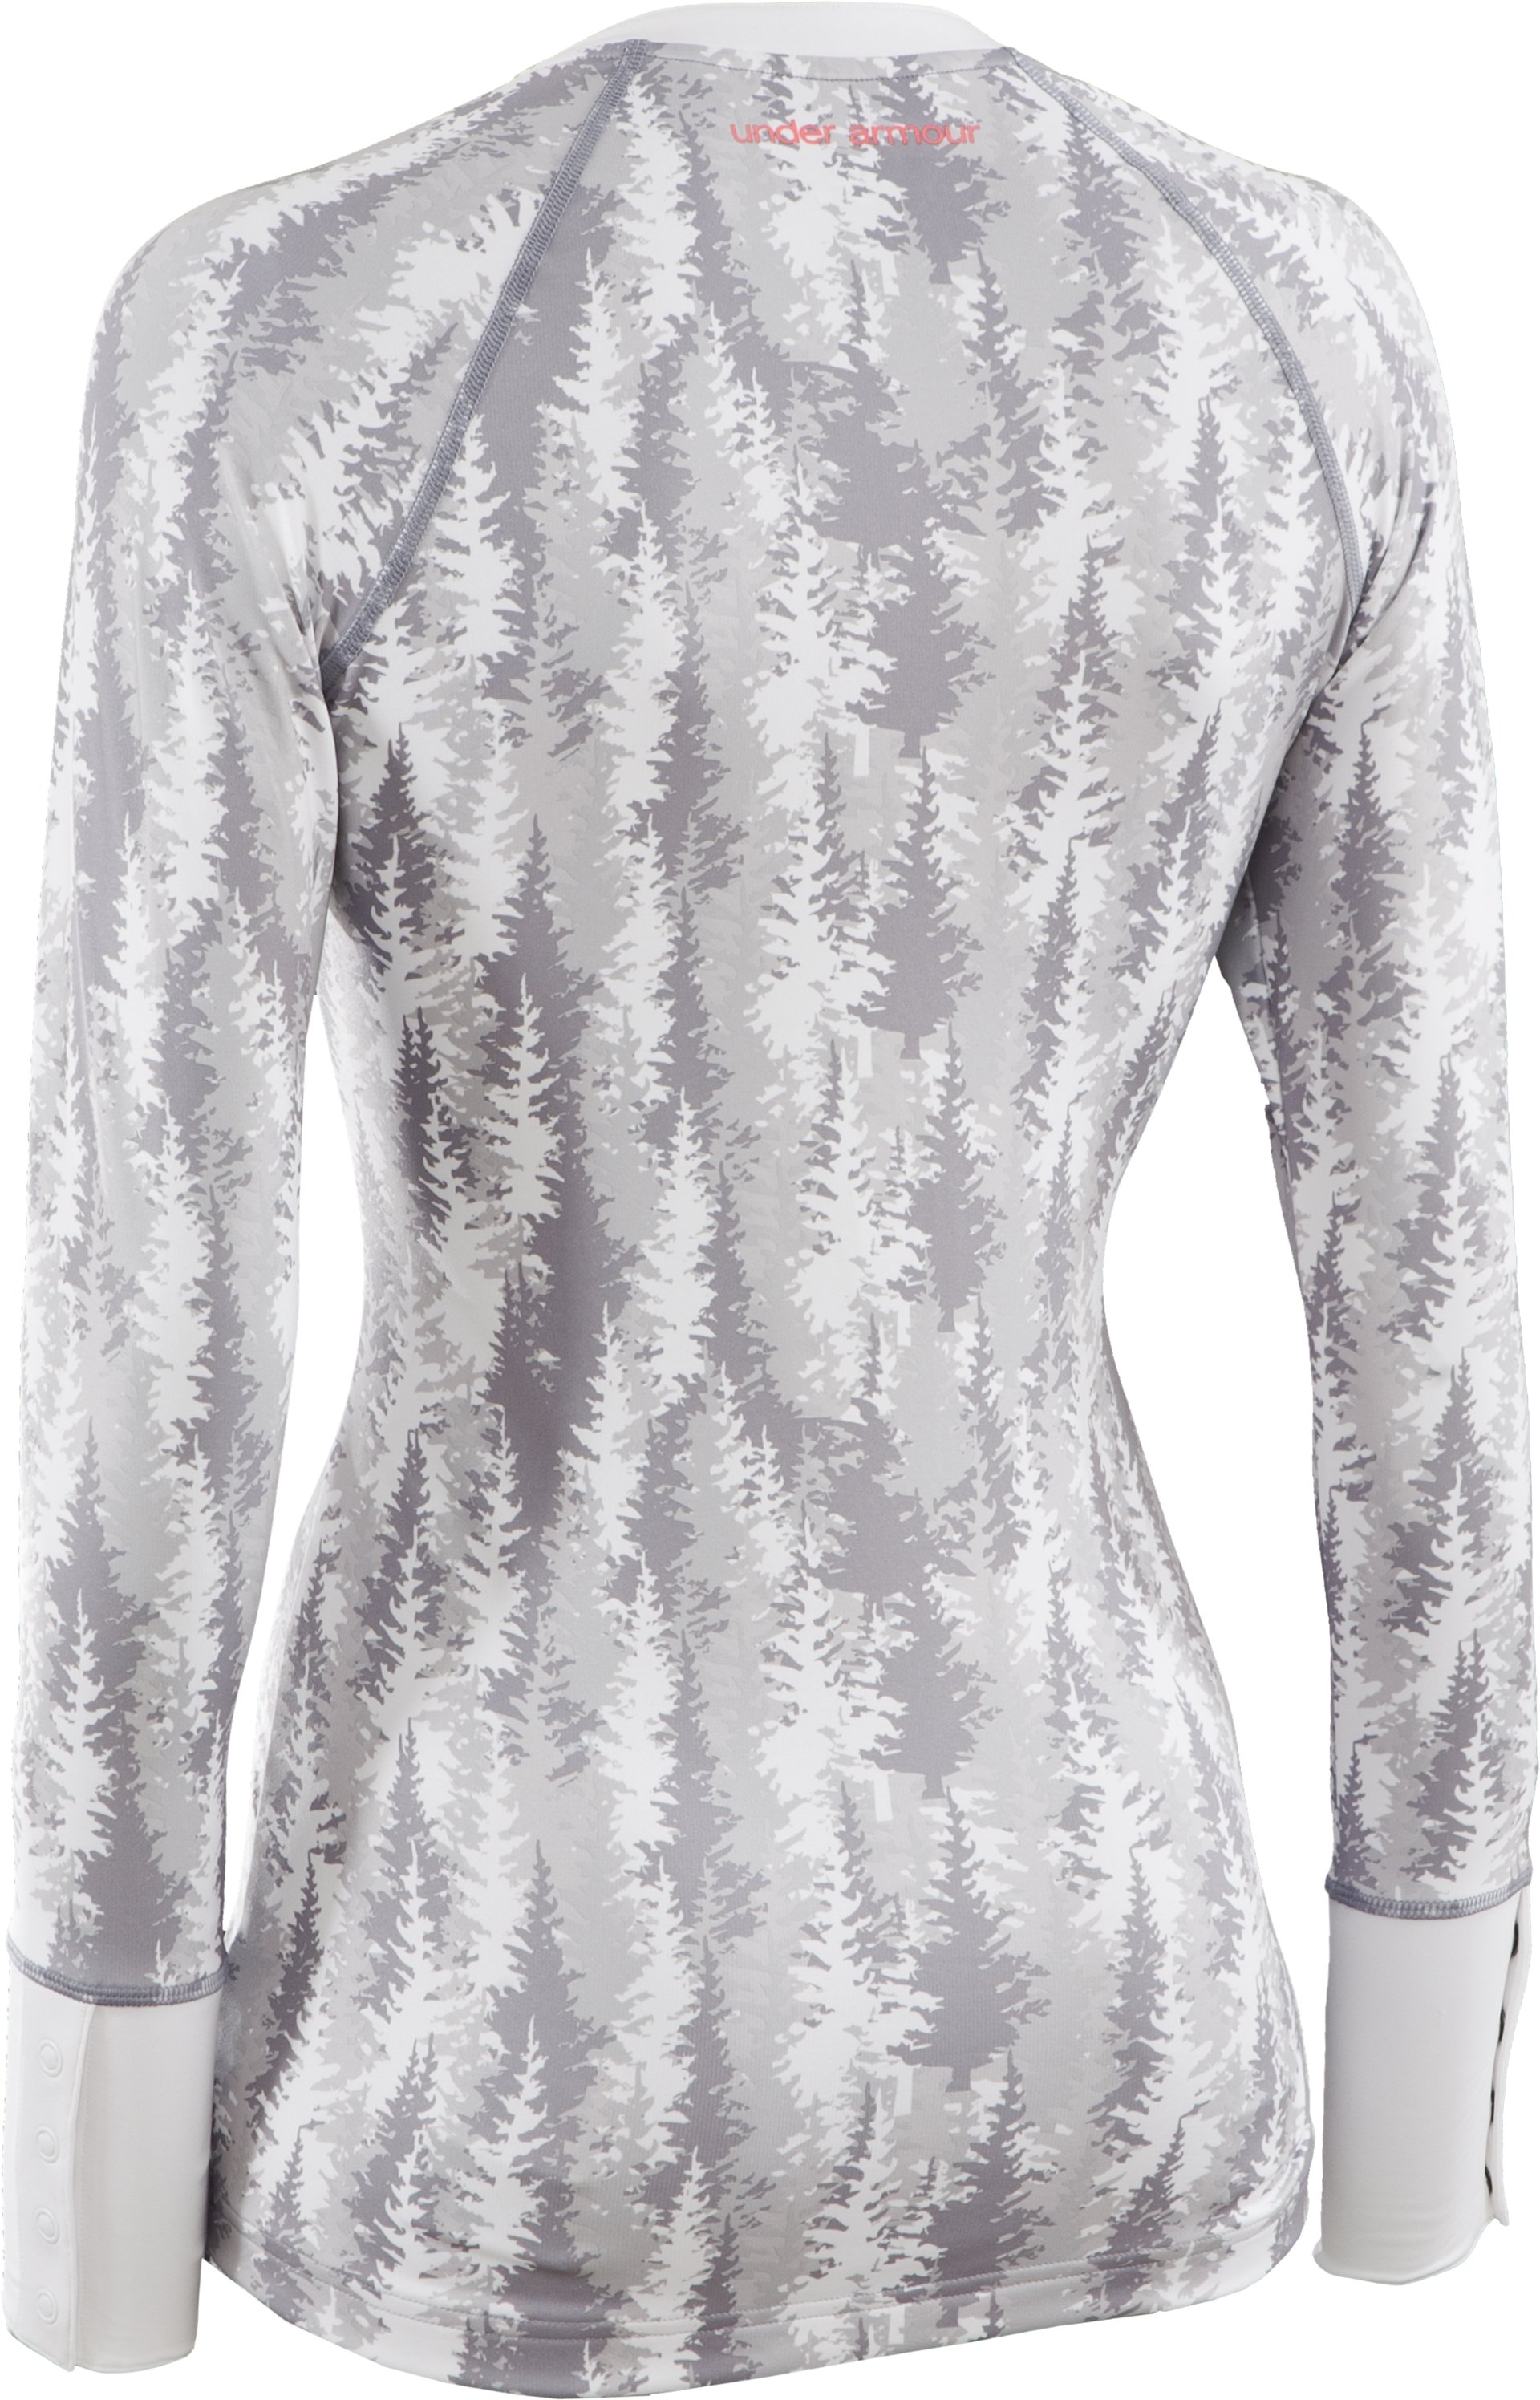 Women's EVO ColdGear® Tree Print Henley Shirt, White, undefined